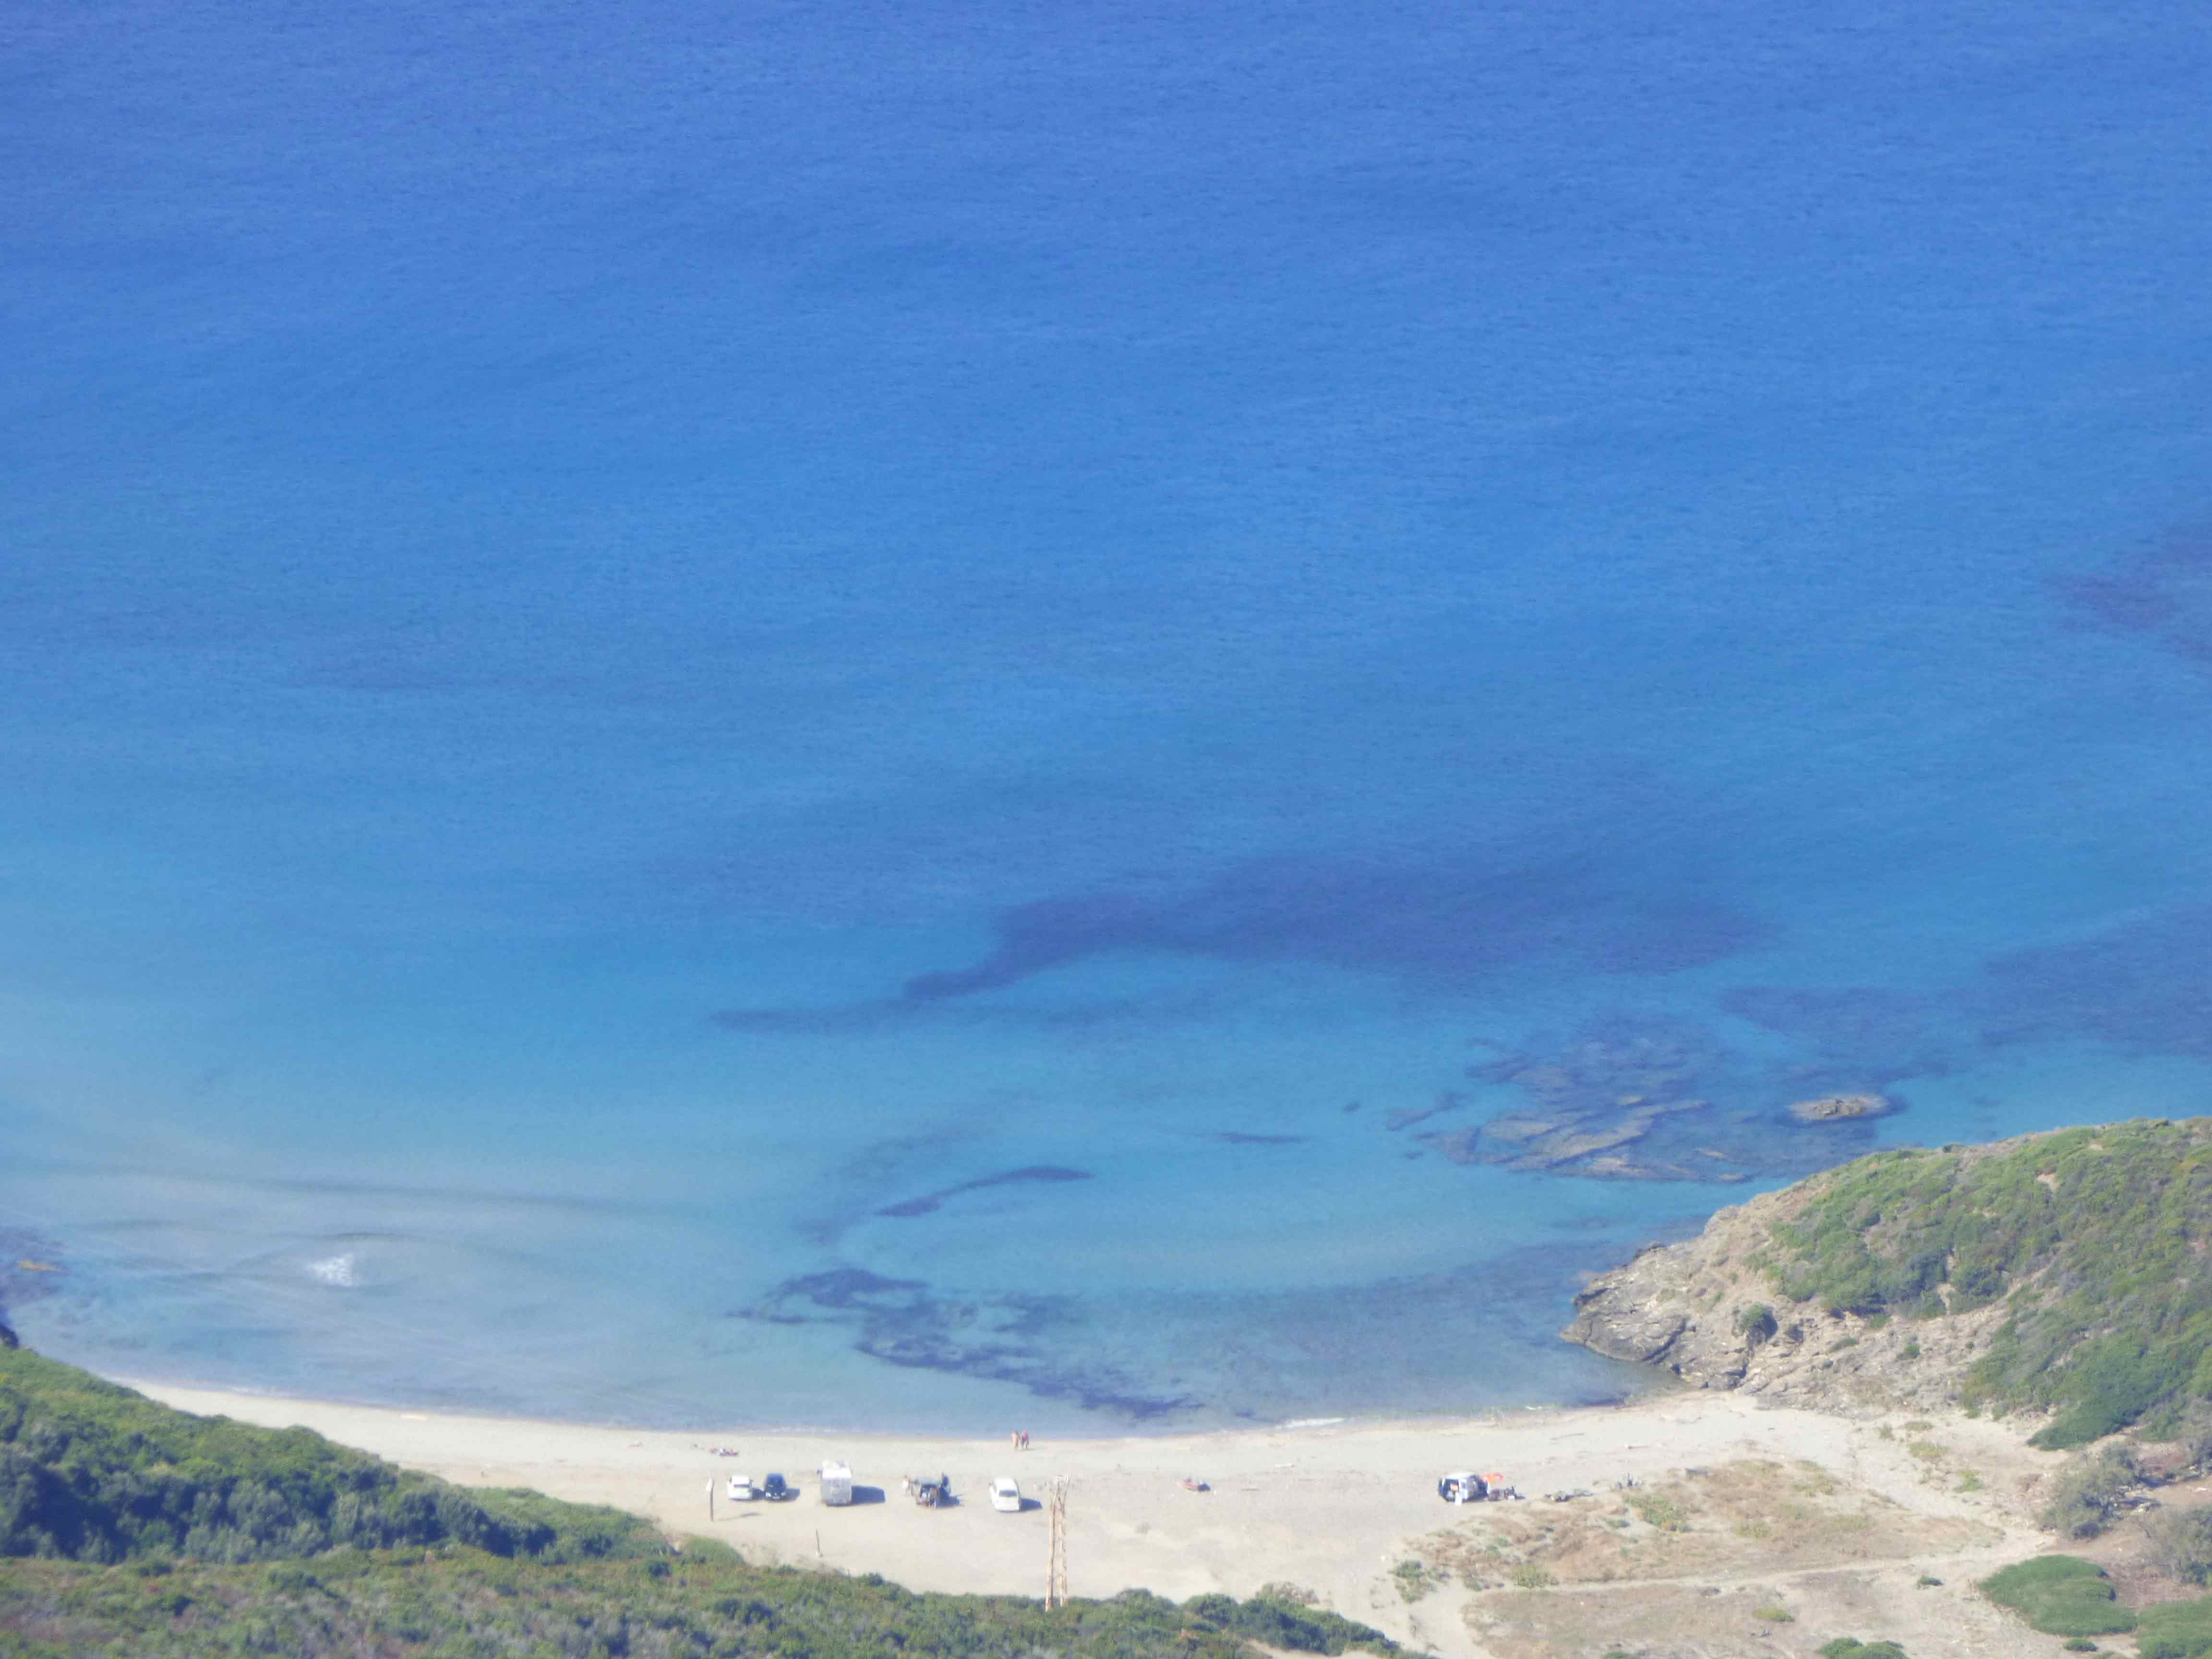 Locapcorse - Holiday rentals in Northern Corsica